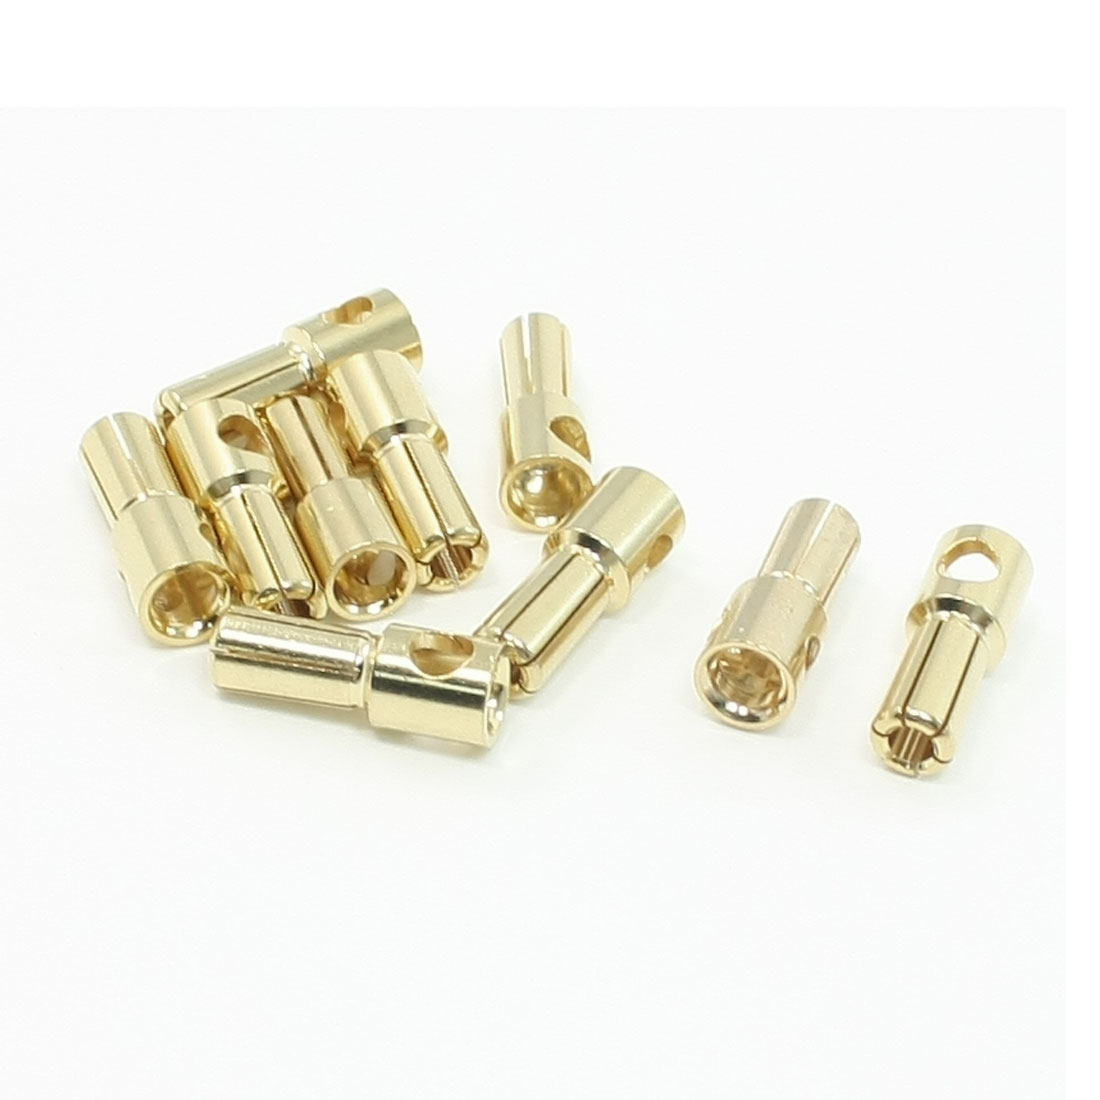 Gold Tone Metal RC Banana Cone Connector Male 5.5mm 10 Pcs